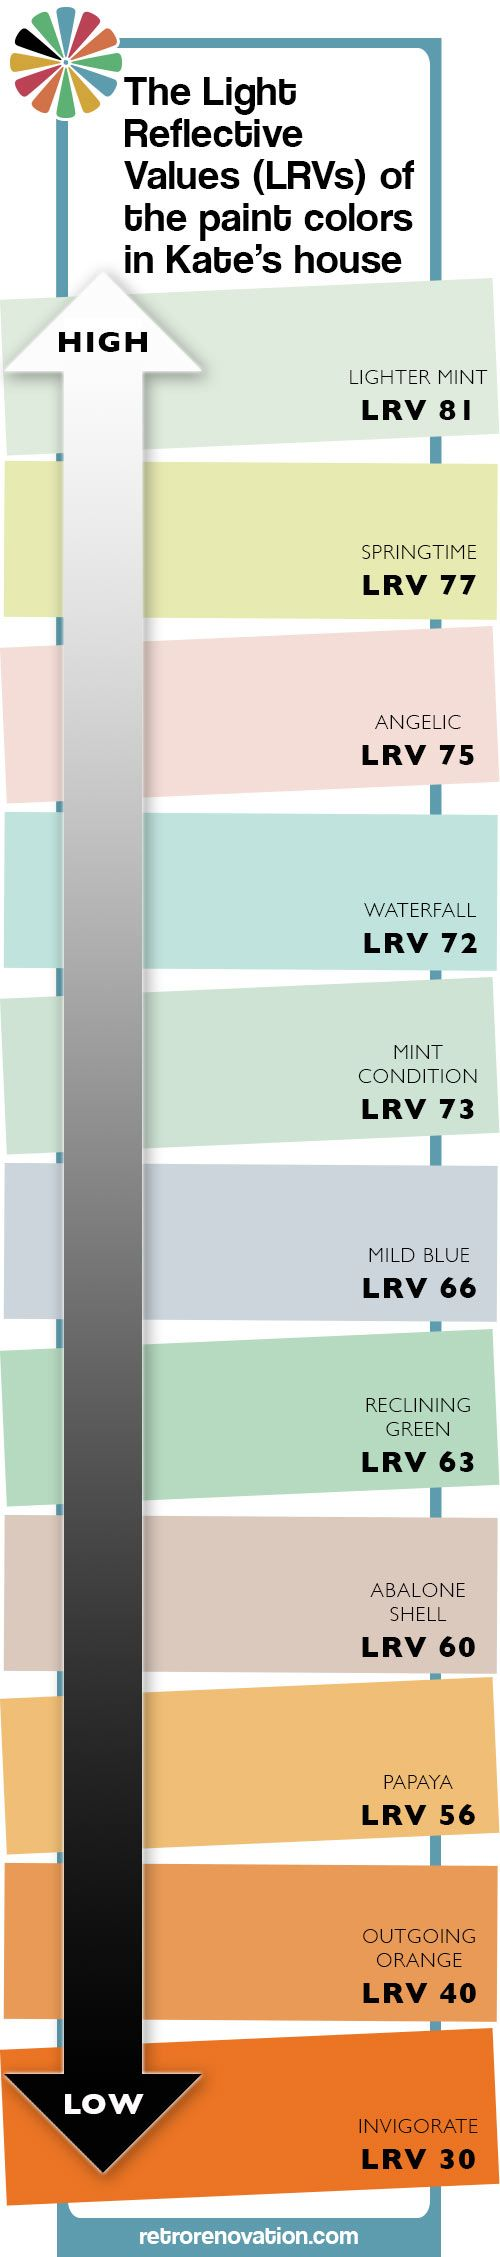 Light reflective values of specific colors in a mid-century house